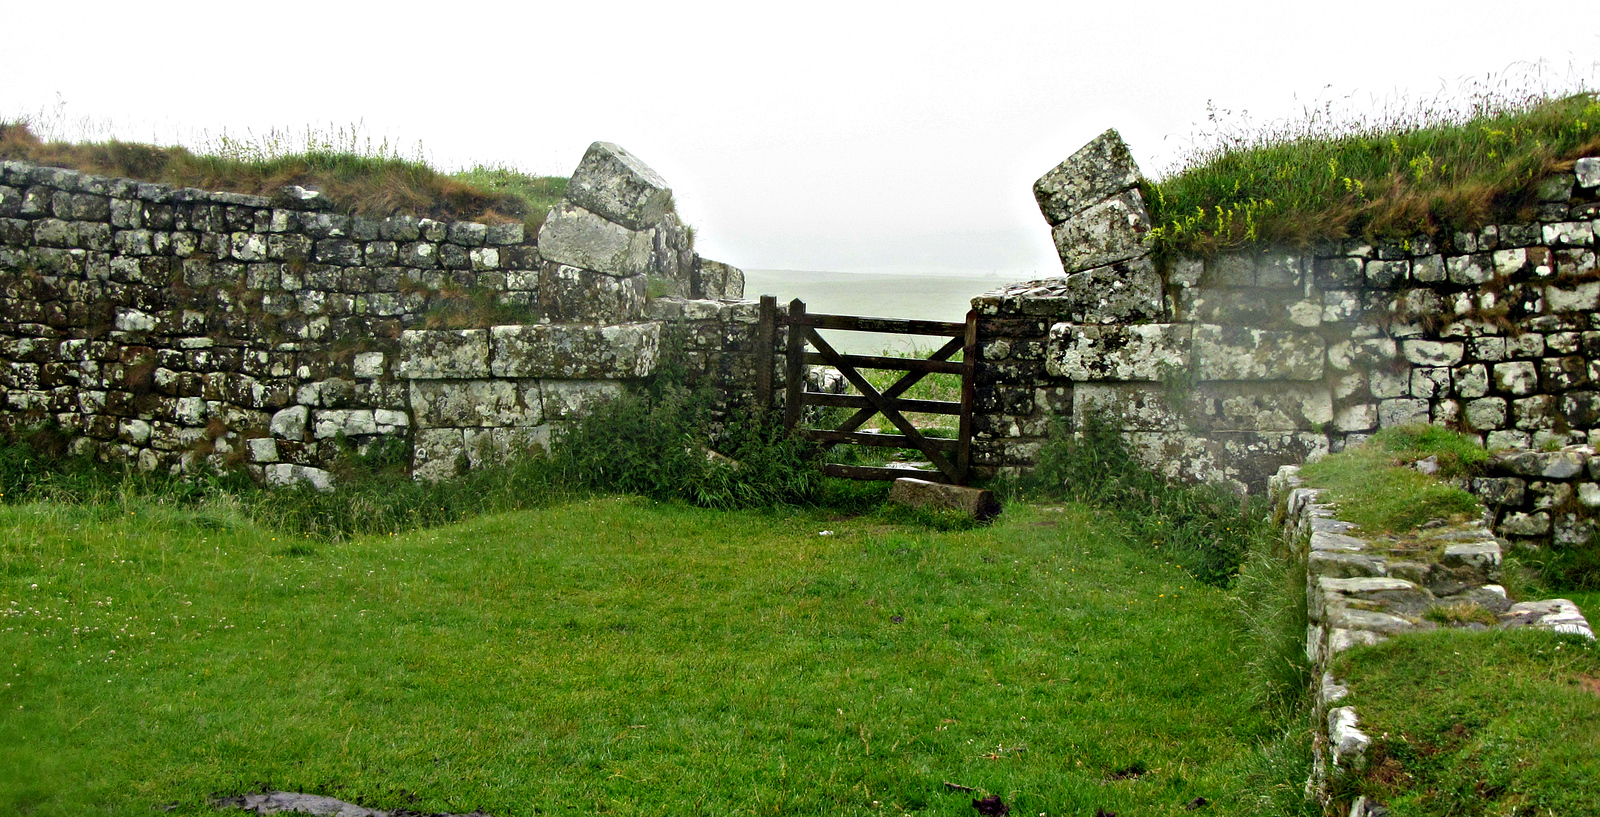 Milecastle 37 - note the arched gate.